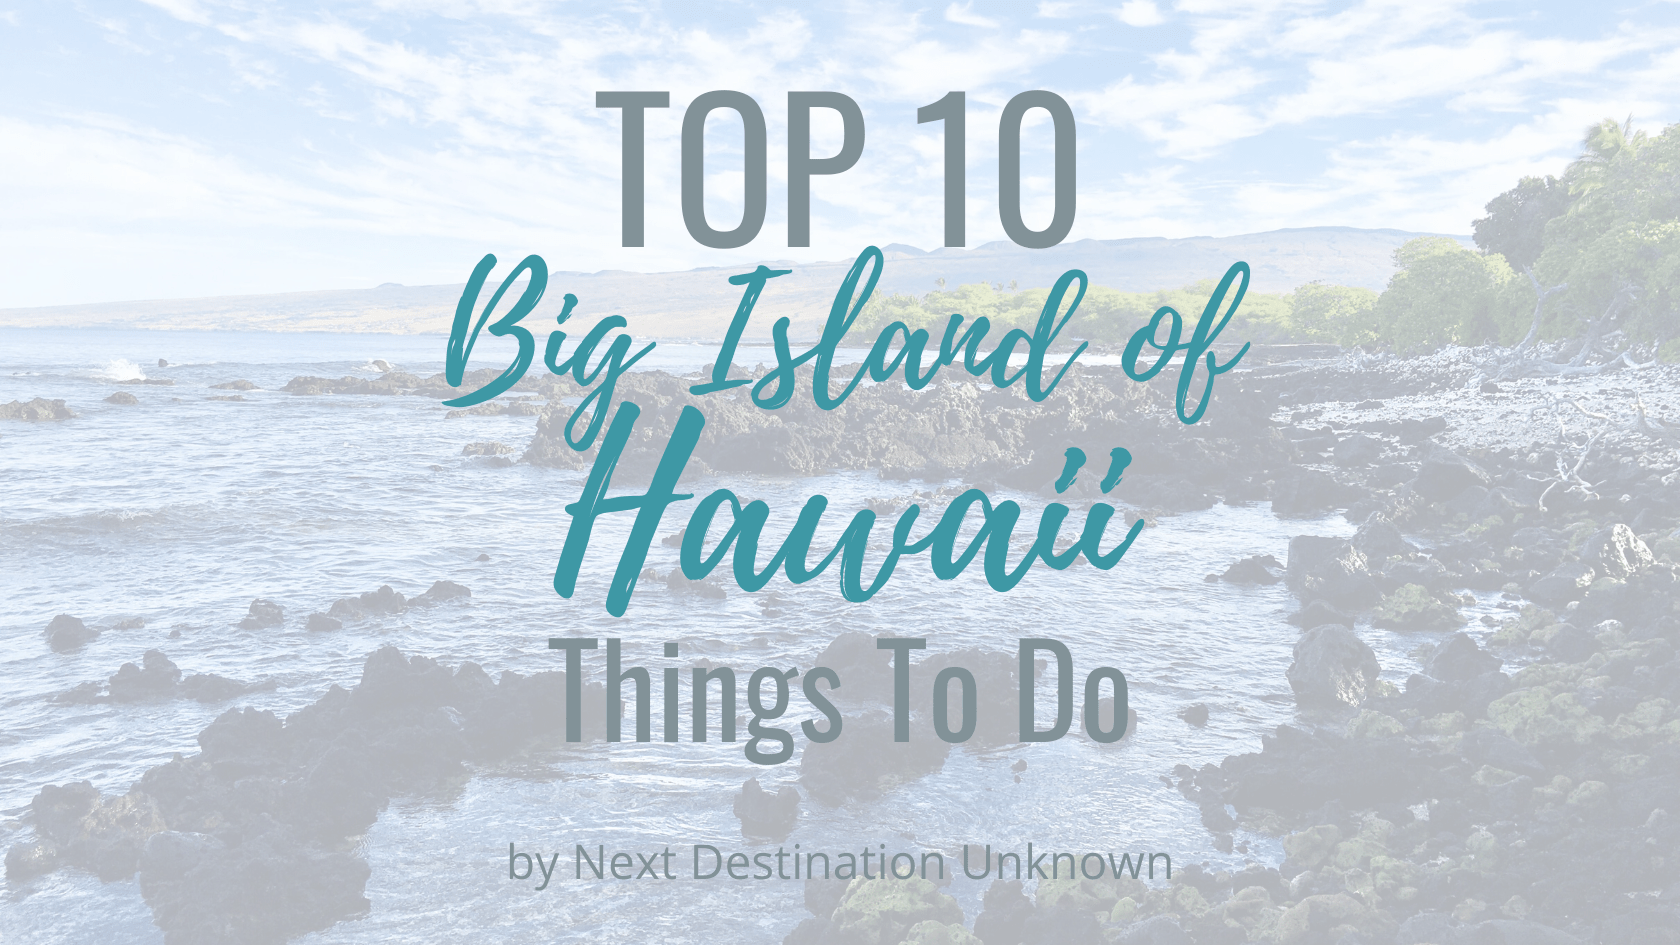 Top 10 Things To Do on the Big Island of Hawaii